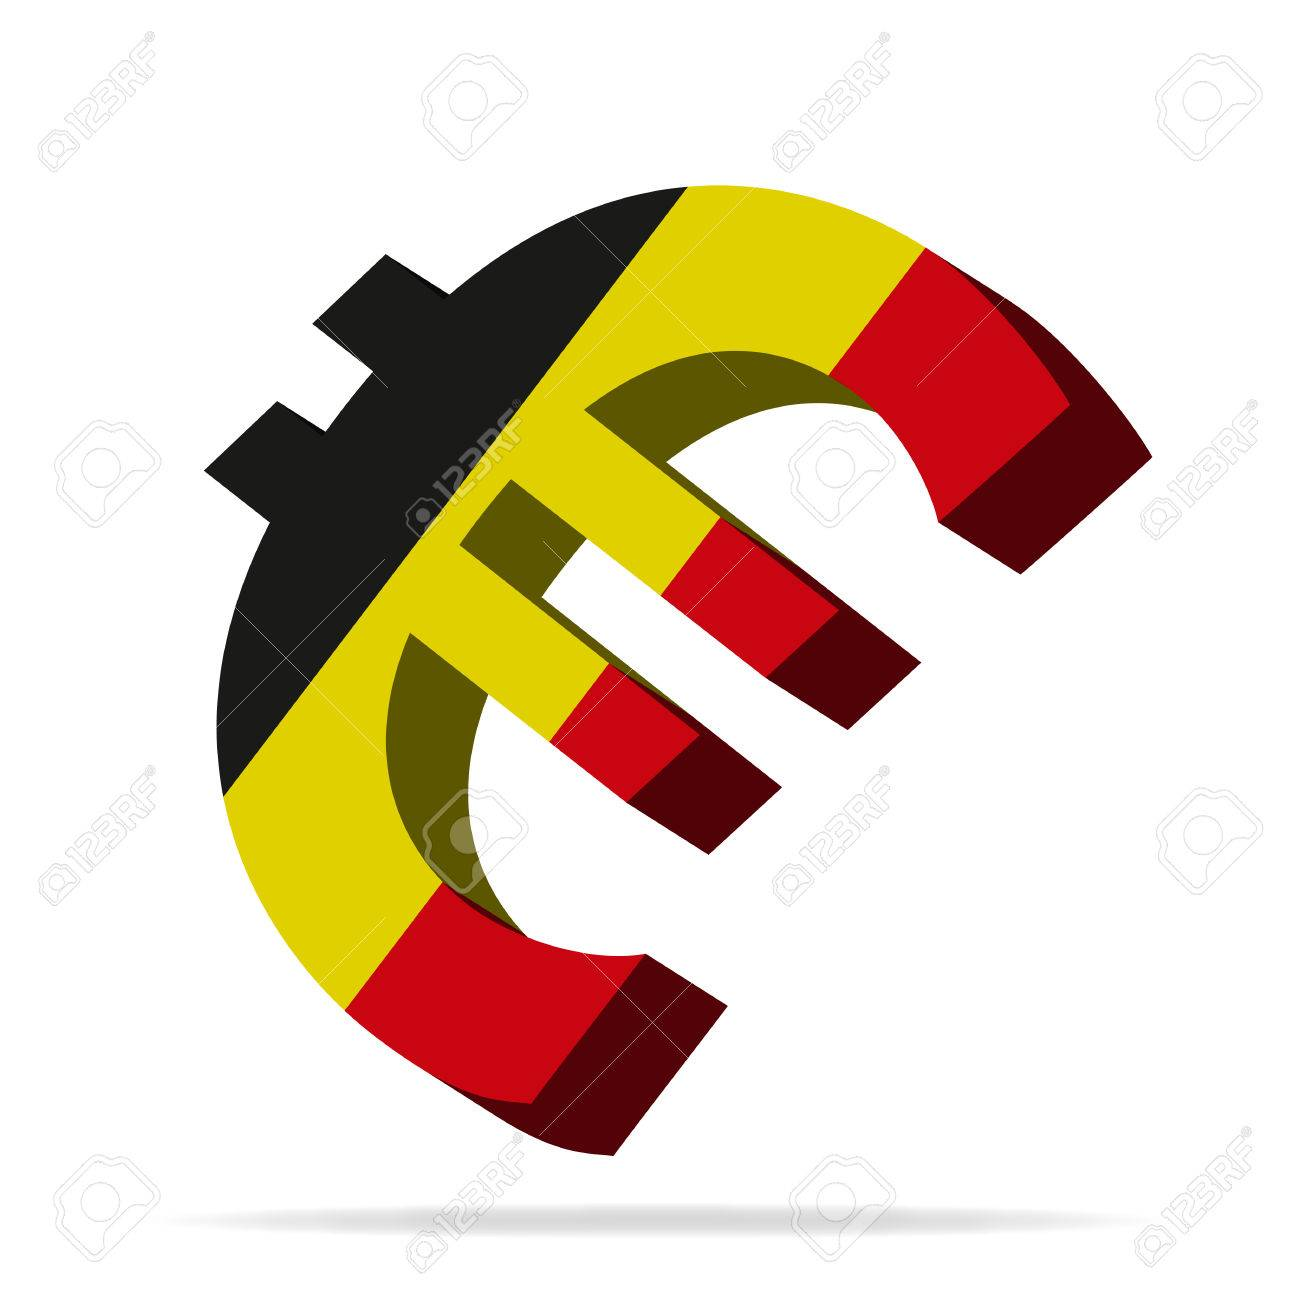 3d Illustration Of The Euro Symbol With Belgium Flag Royalty Free